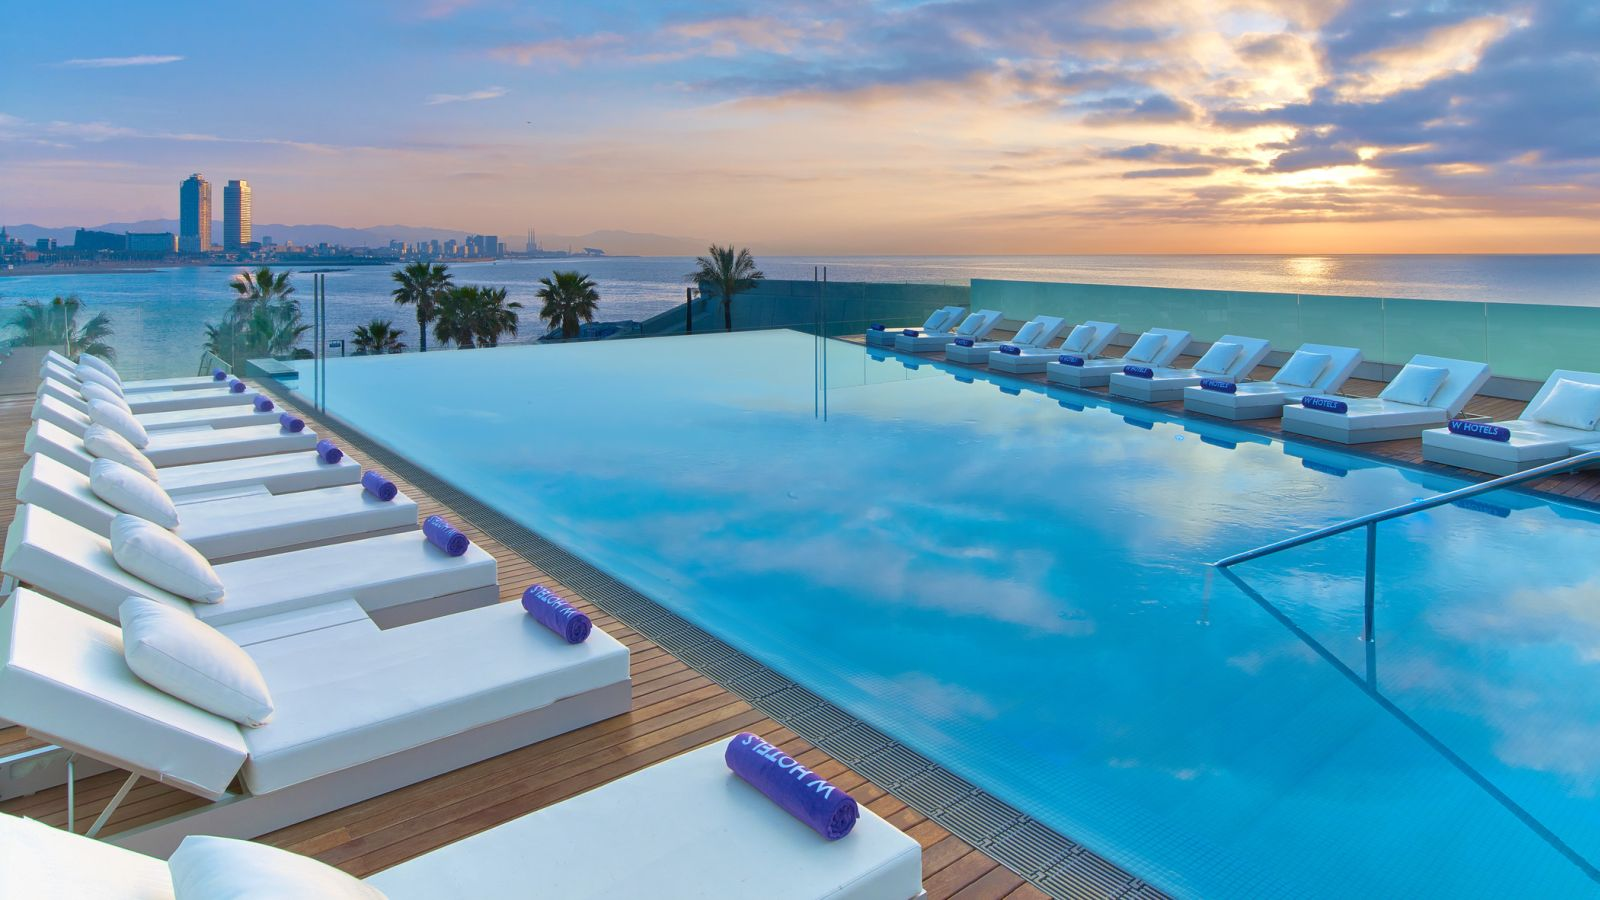 Barcelona Hotels More Than 2 200 Hotels With Reviews And Prices - Piscinas Desire